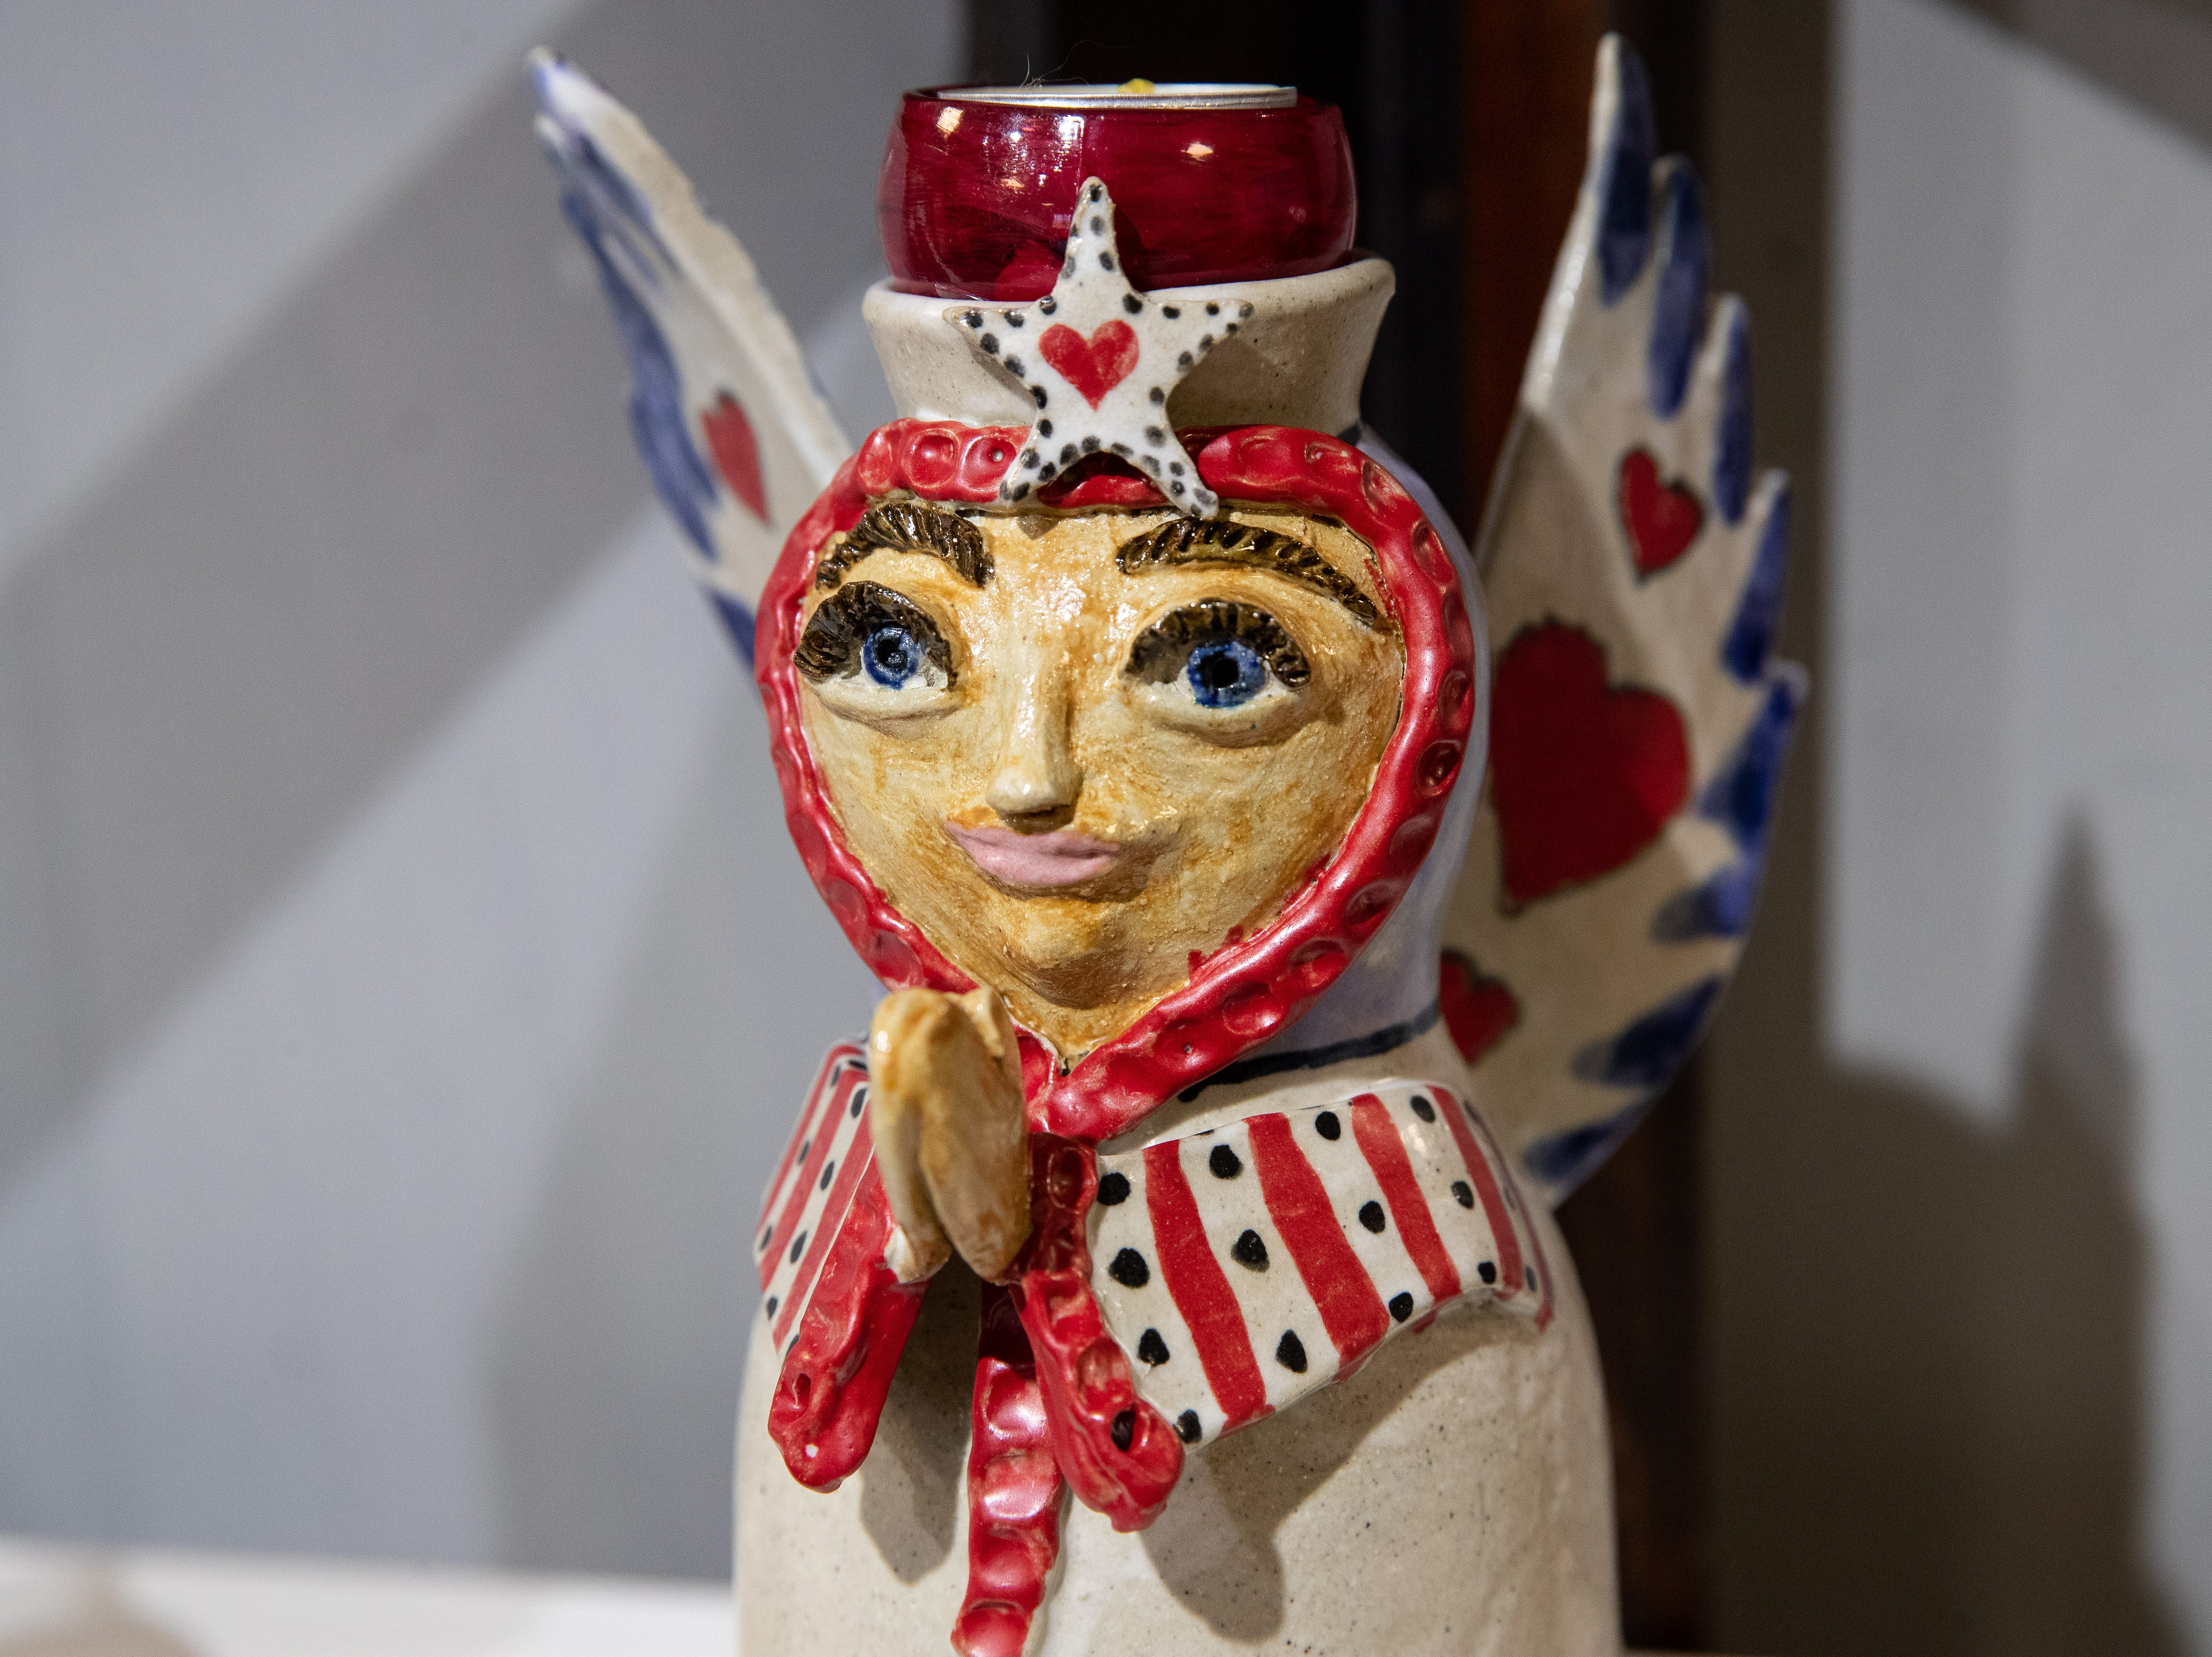 Ceramics and pottery by Betty Shamel at the Wind Way Gallery at 203 South Austin Street in Rockport.